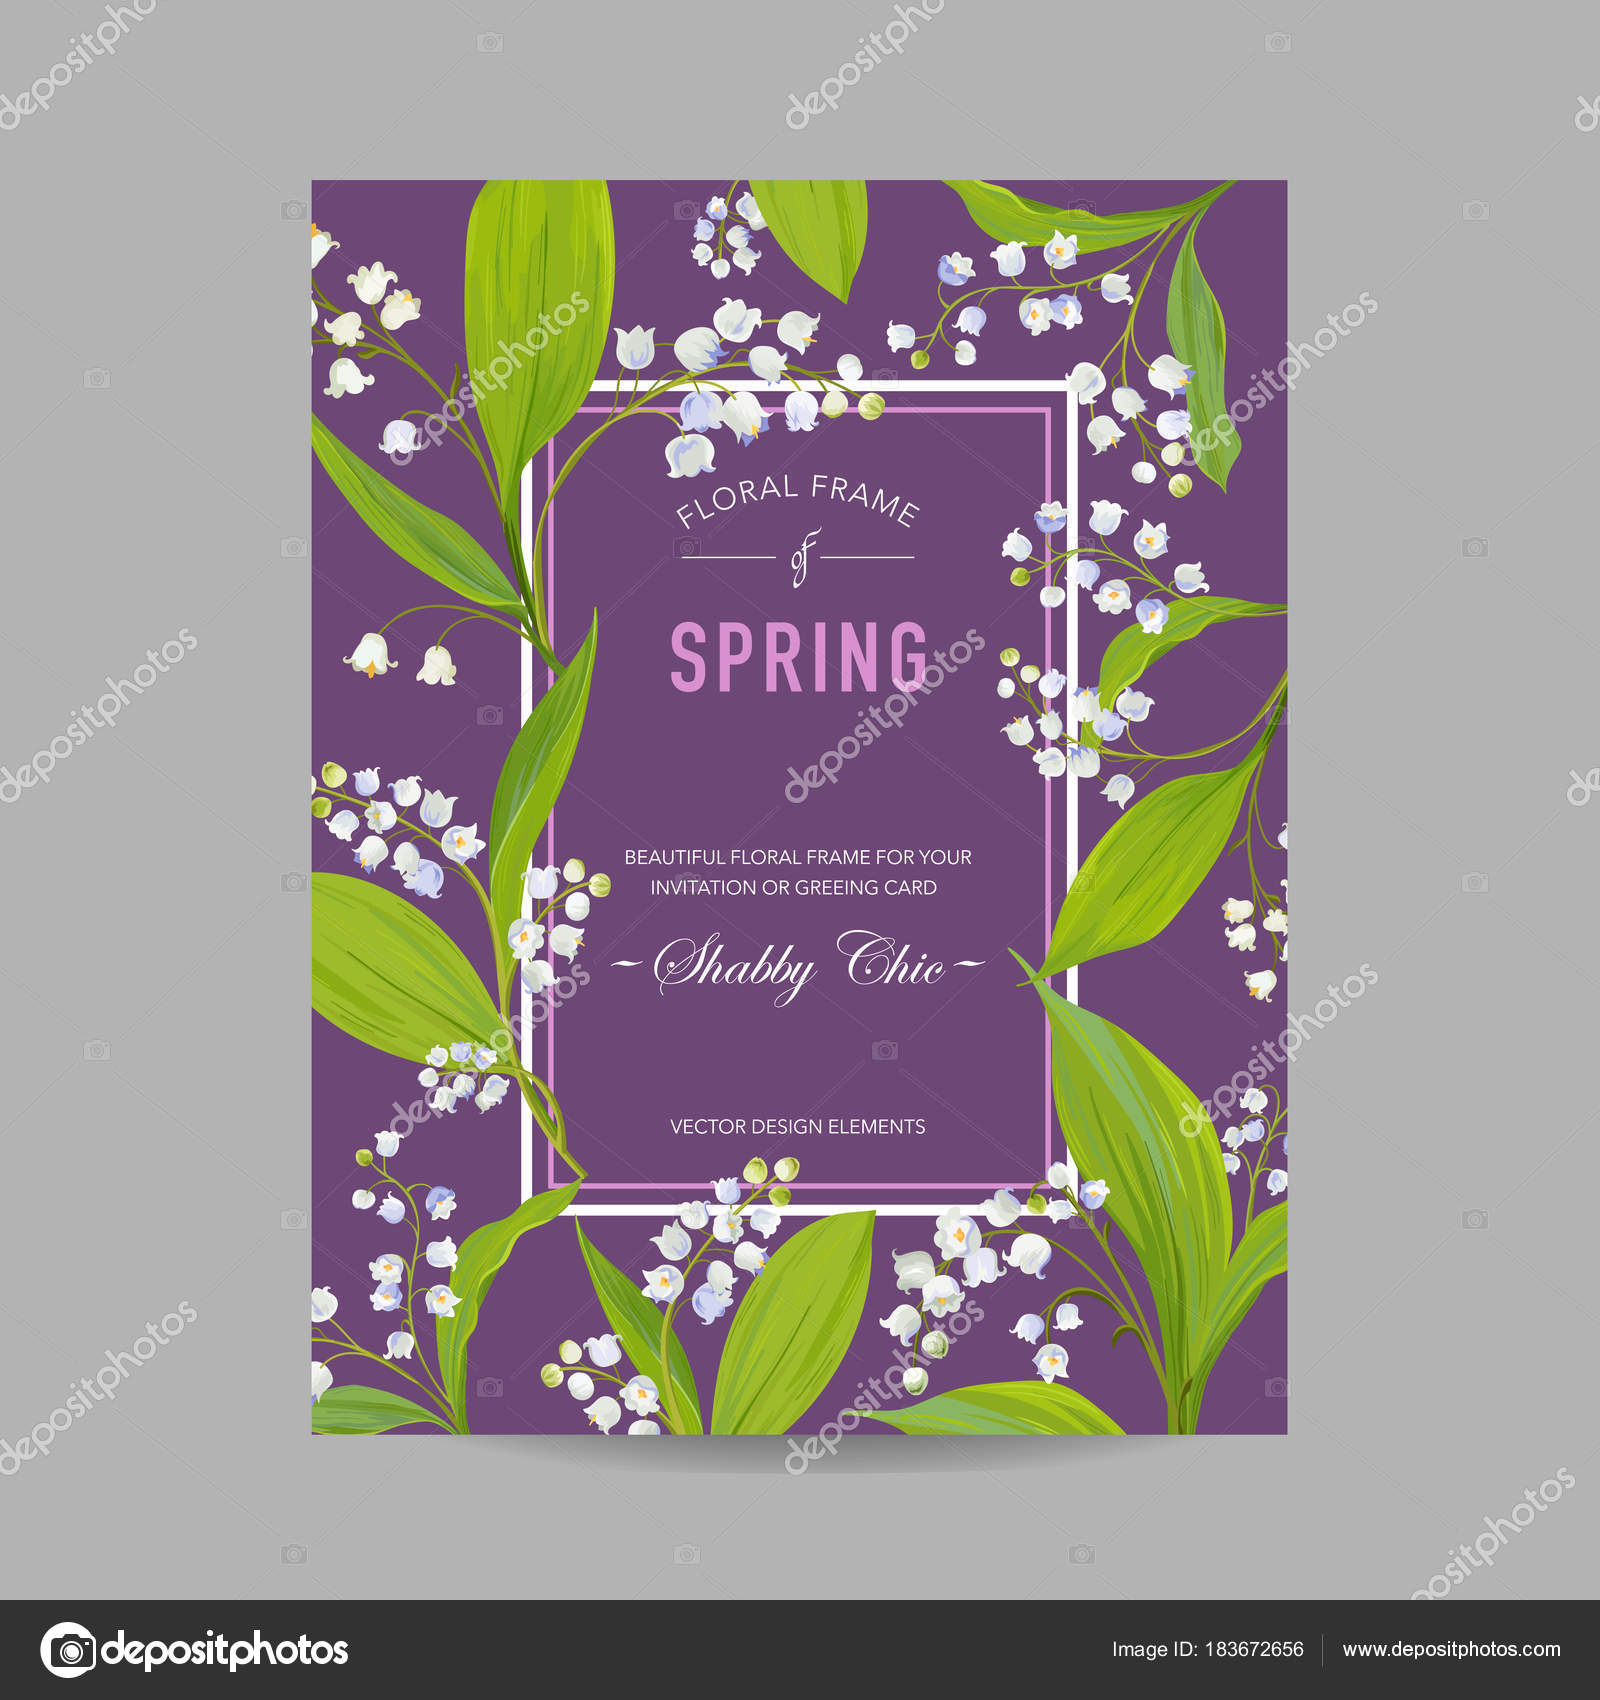 Floral spring design template for wedding invitation greeting card floral spring design template for wedding invitation greeting card sale banner poster placard cover background with lily flowers izmirmasajfo Image collections